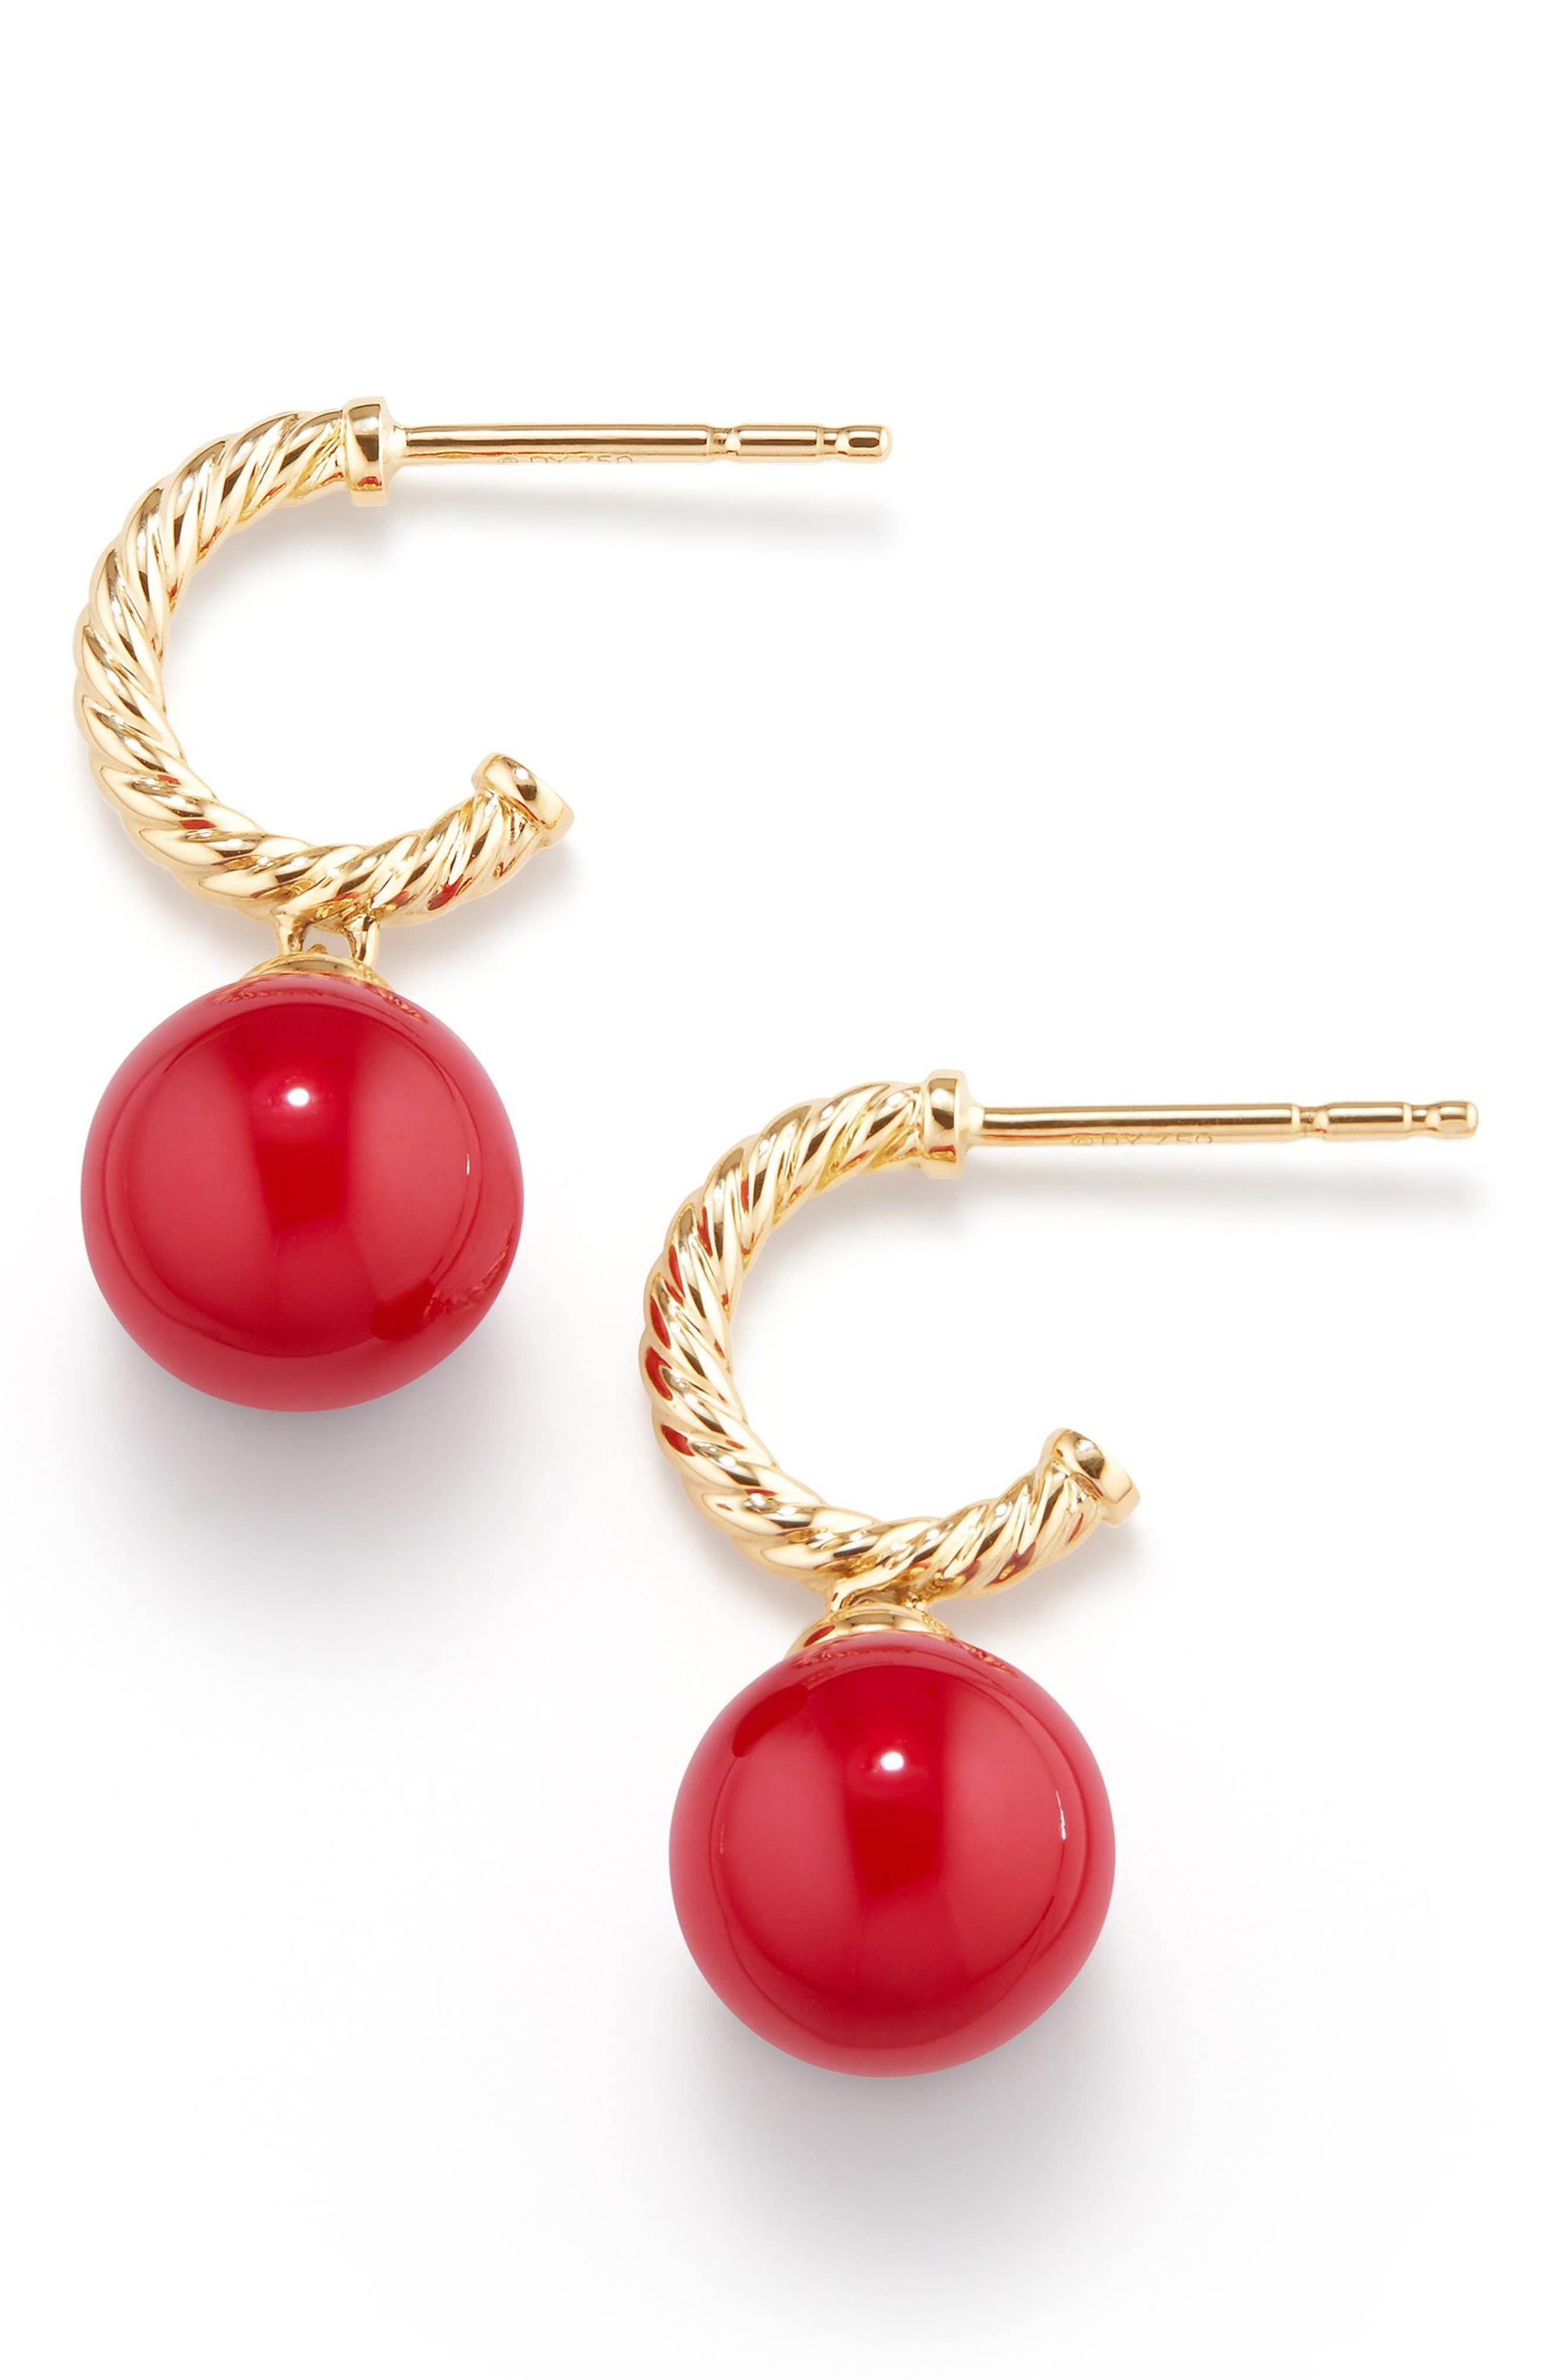 Solari Hoop Earrings with 18K Gold and Red Enamel,                         Main,                         color, 710